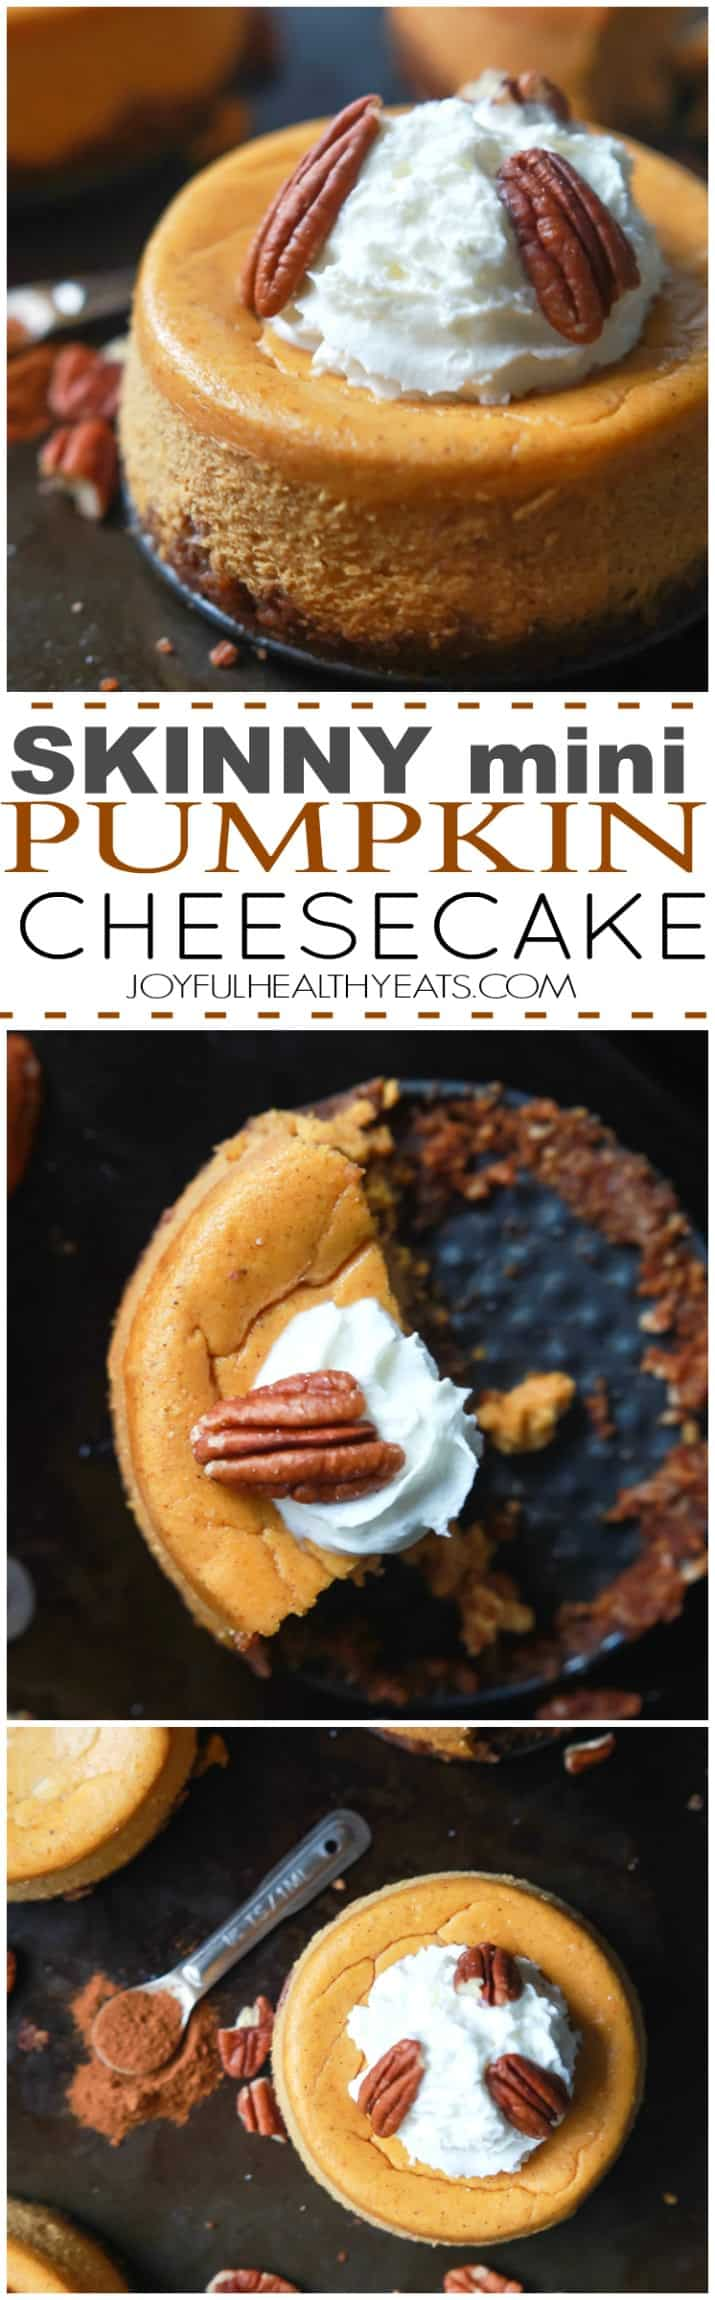 This Skinny Mini Pumpkin Cheesecake is every bit as good as the Cheesecake Factory's. Easy, light, creamy and full of pumpkin flavor, definitely a dessert recipe your family will devour! | joyfulhealthyeats.com